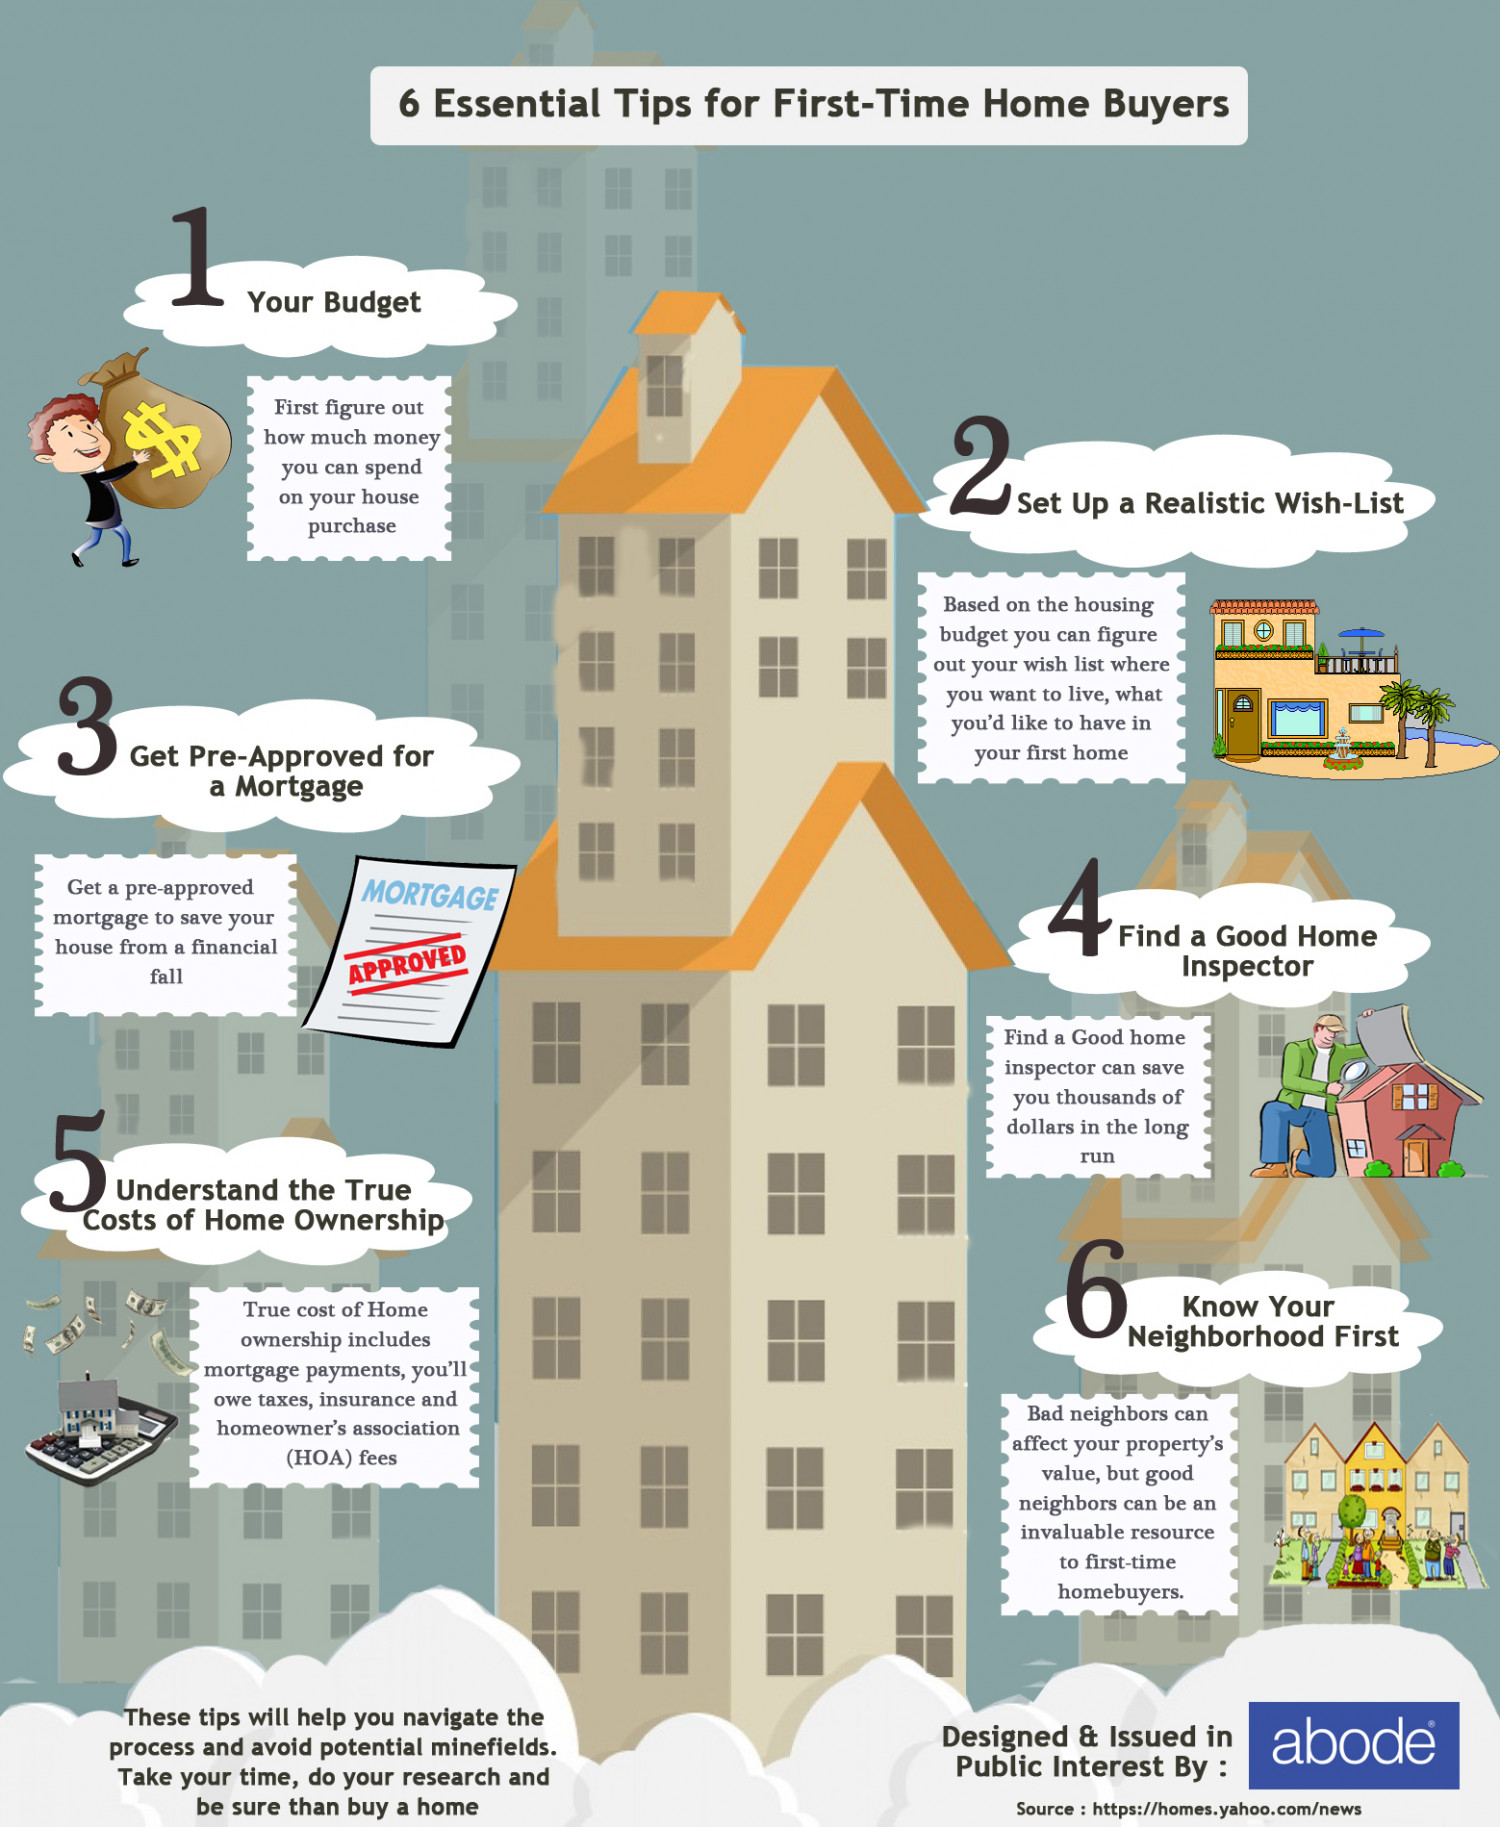 6 Essential Tips For First Time Home Buyers | Visual.ly on home staging tips, home business tips, home owners tips, home seller tips, home inspection tips, home selling tips,